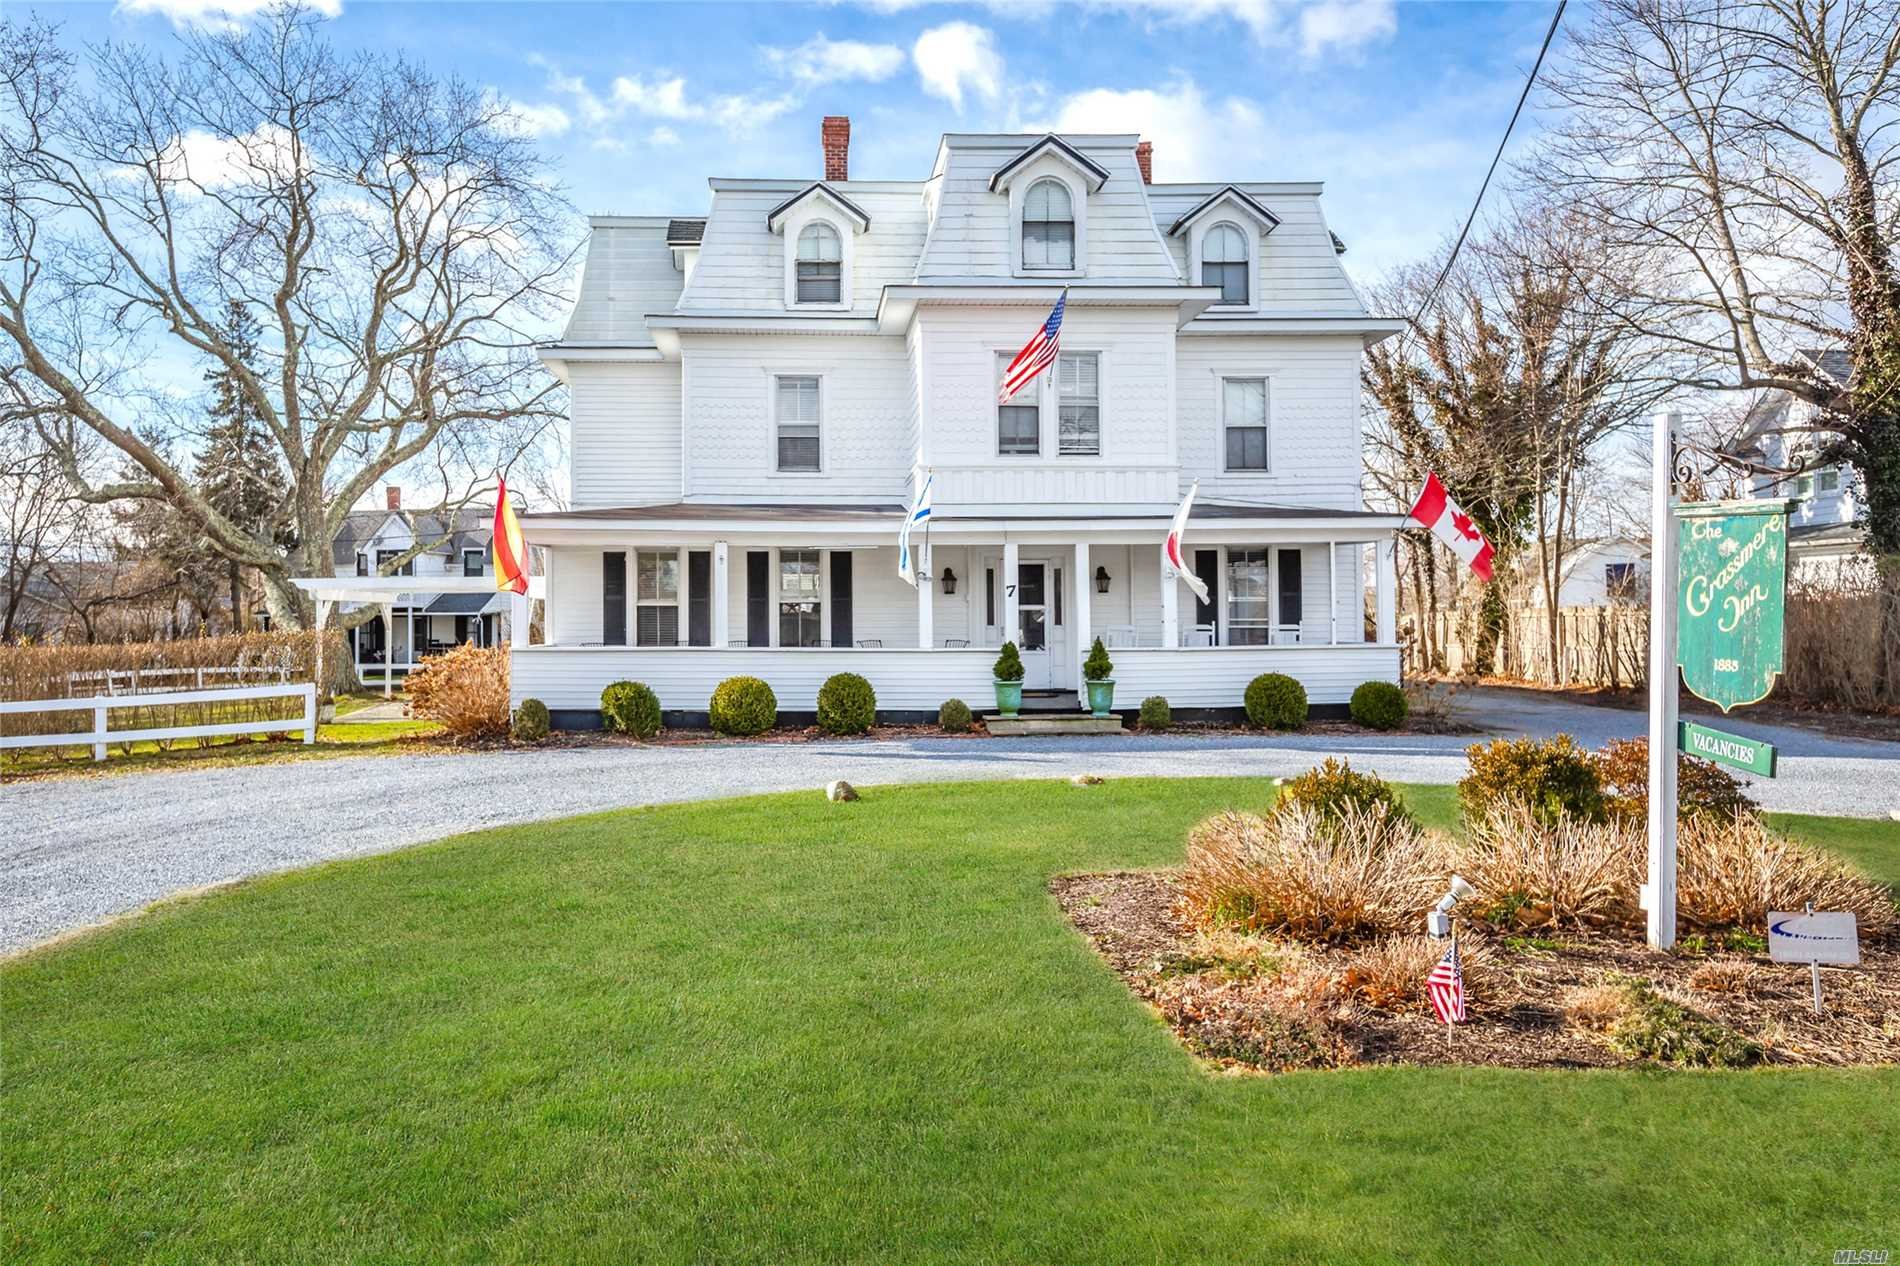 Do You Currently Own An Inn Or B&B?if You Do Then You Should Add This Prime Location To Your Porfolio.Old World Charm In Whb Village!!!The Grassmere Inn Built In 1885 Has 6, 500 Sq.Ft., 14 Guest Rooms, Lr, Fdr, Kit, 2Staff Bdrms, Owner's Apt & Office.An Additional 2, 100 Sq.Ft Bldg With 6 Additional Units.In The Heart Of Whb's Main St.&Ocean Beaches Less Than A Mile.Perfection!